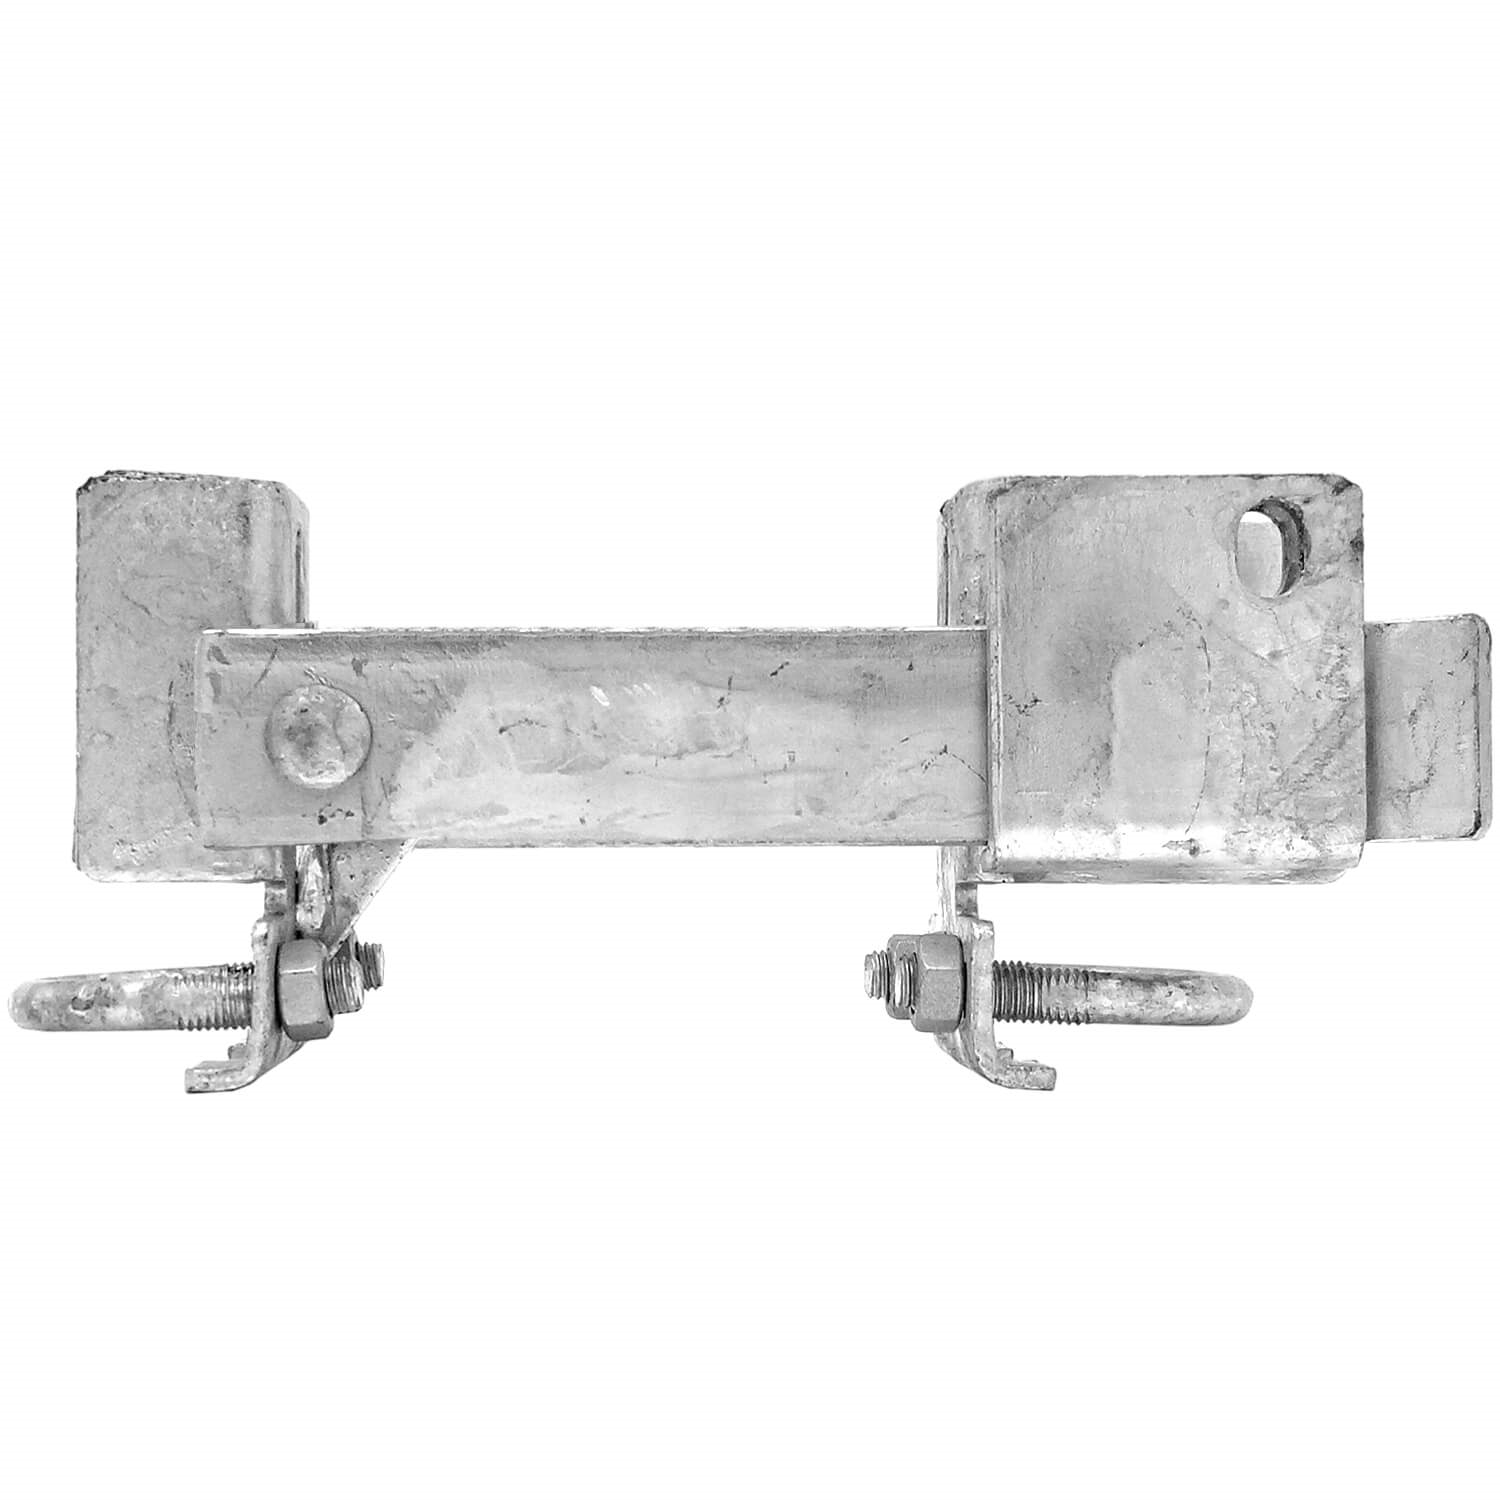 Chain Link Fence Parts Chain Link Gate Parts Commercial